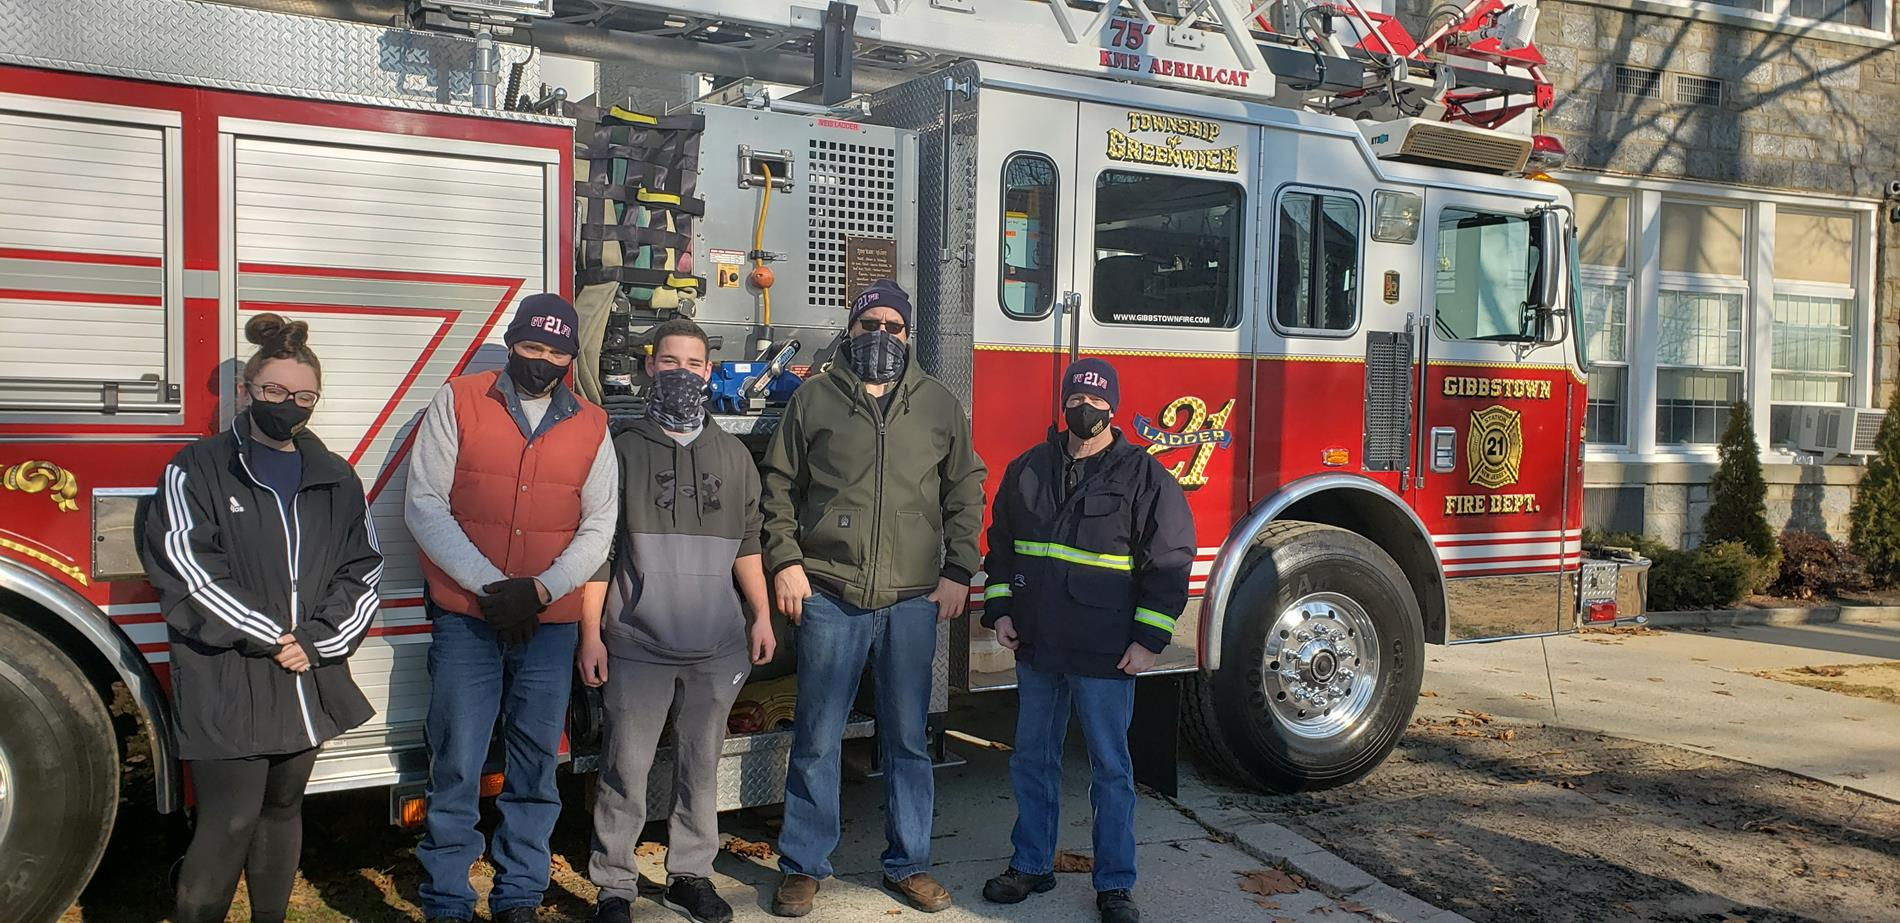 Members of the Gibbstown Fire Department pose in front of Fire Truck after rescuing Old Glory.